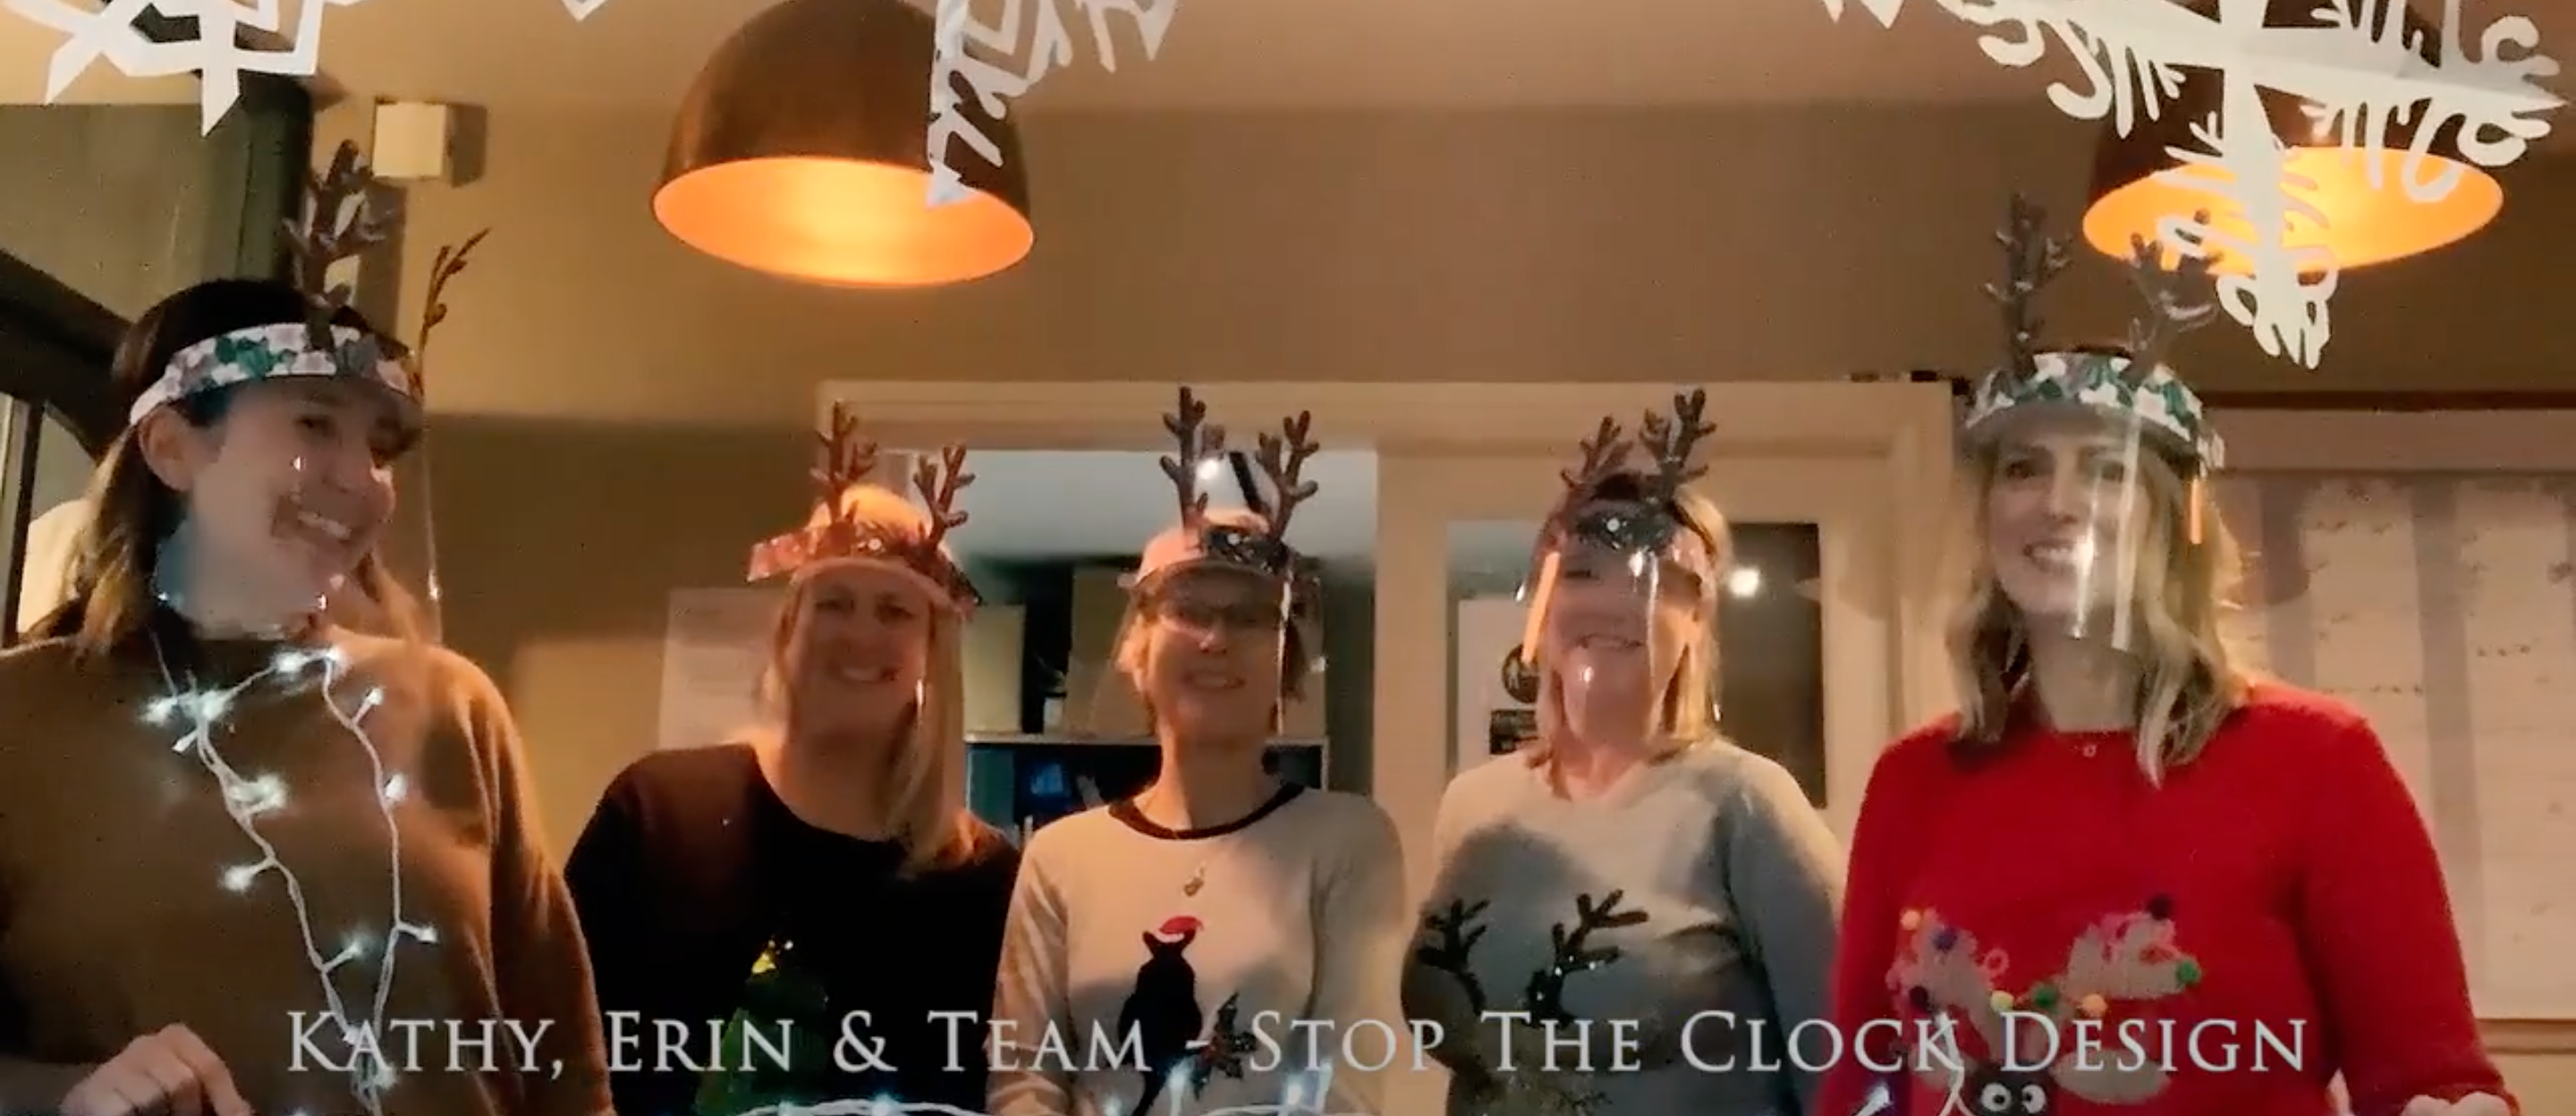 Above: The Stop the Clock Design clan masked up for the filming.